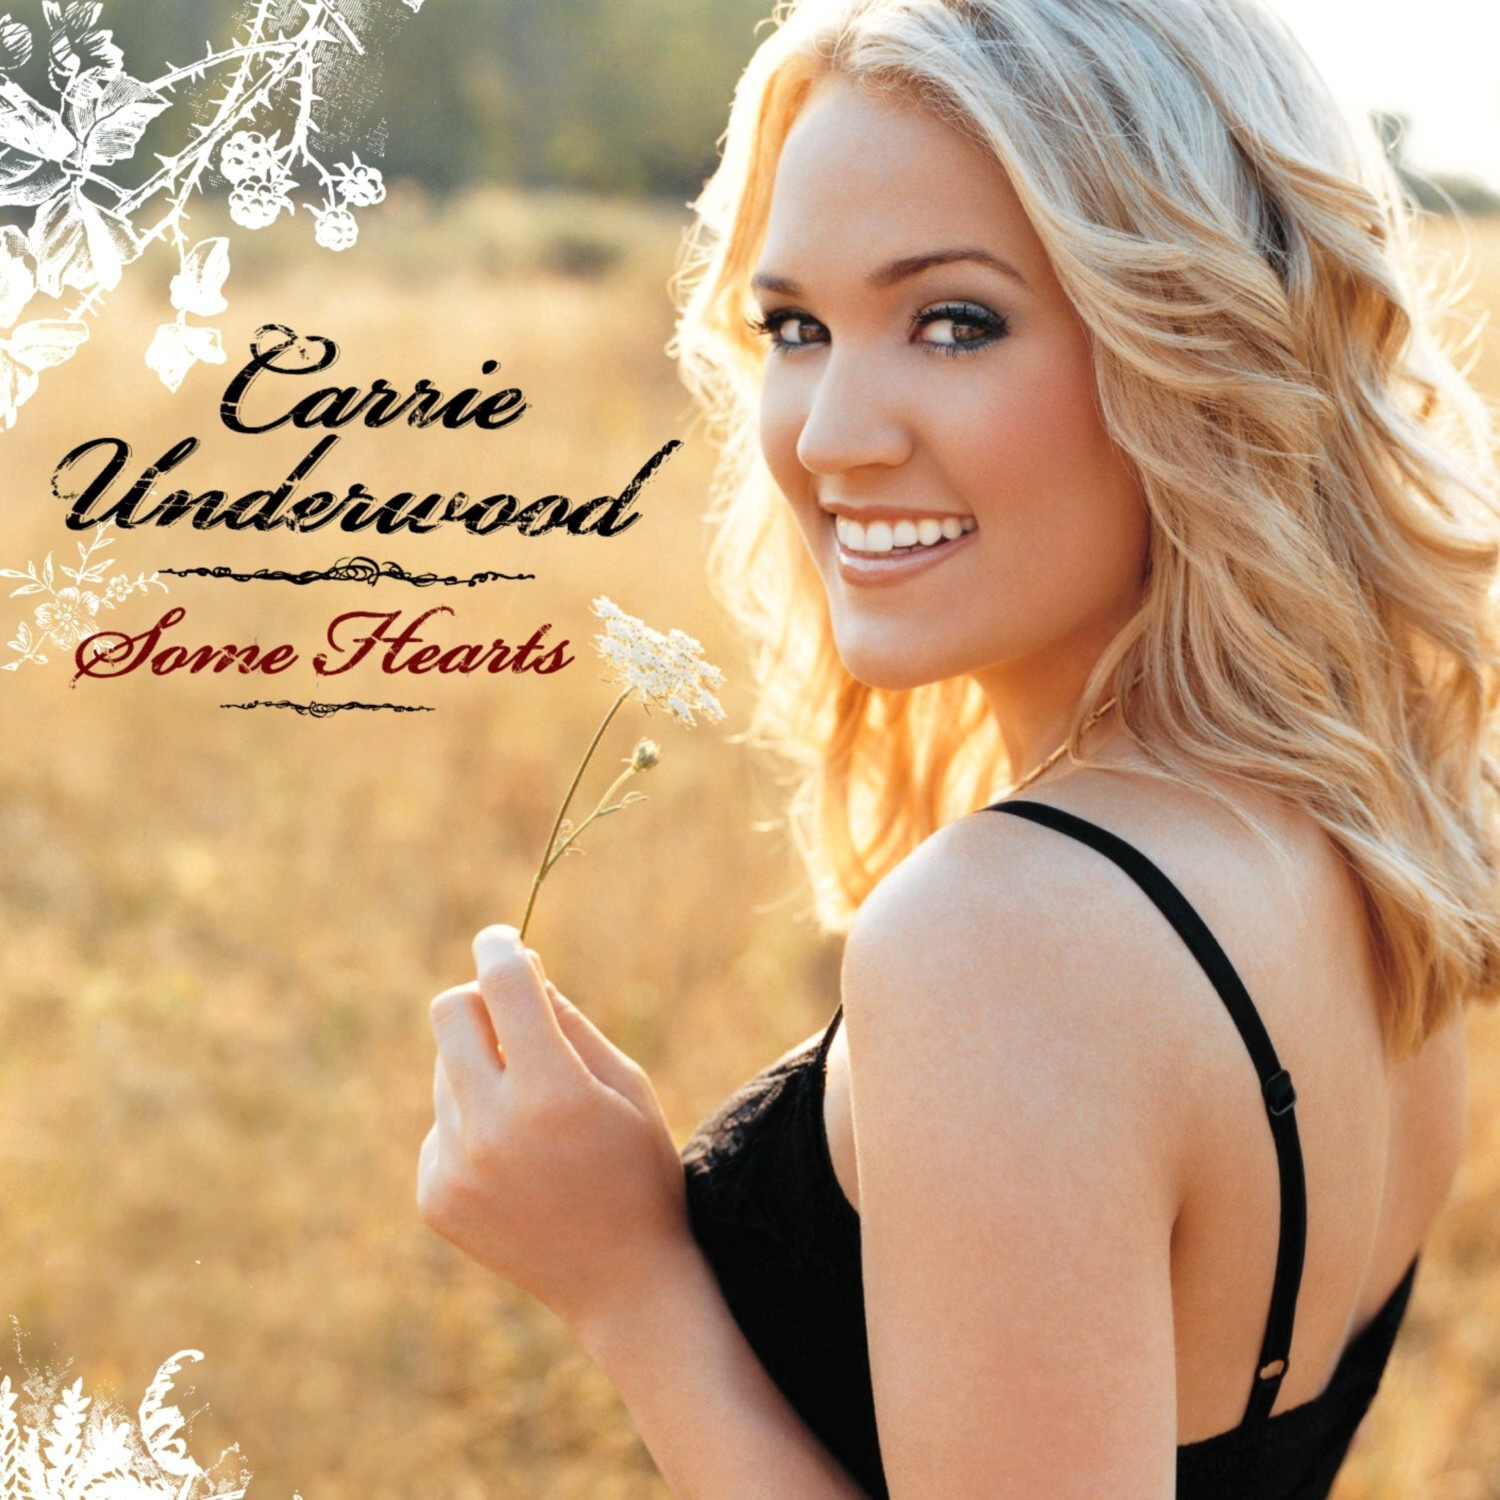 Encarte: Carrie Underwood   Some Hearts